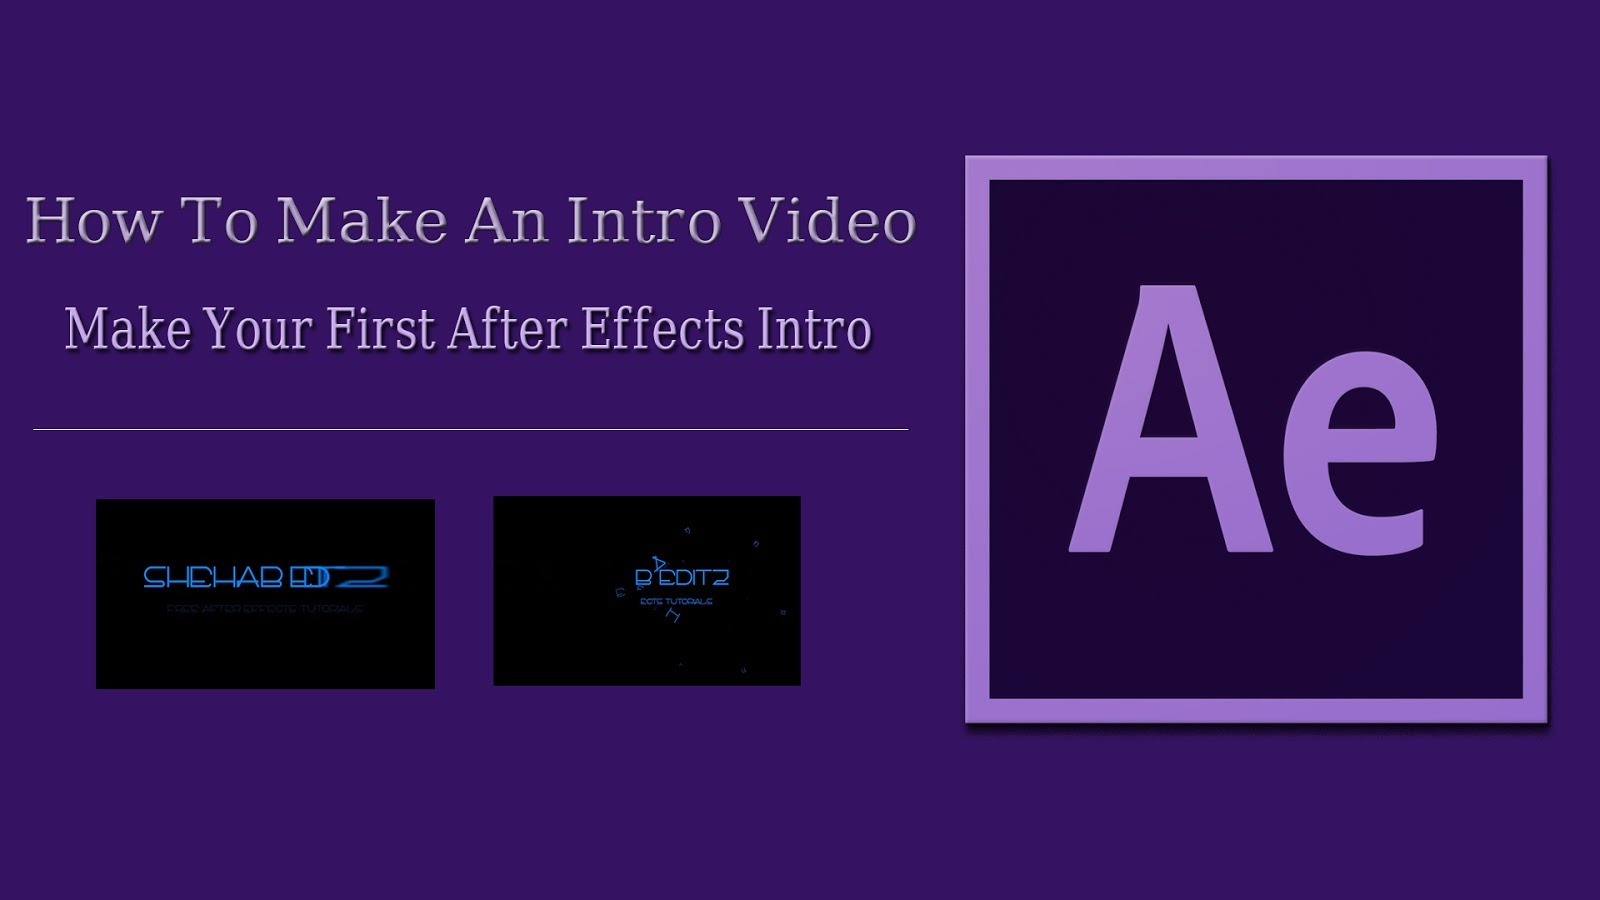 How to make an intro video for youtube after effects tutorial how to make an intro video for youtube after effects tutorial beginners baditri Image collections